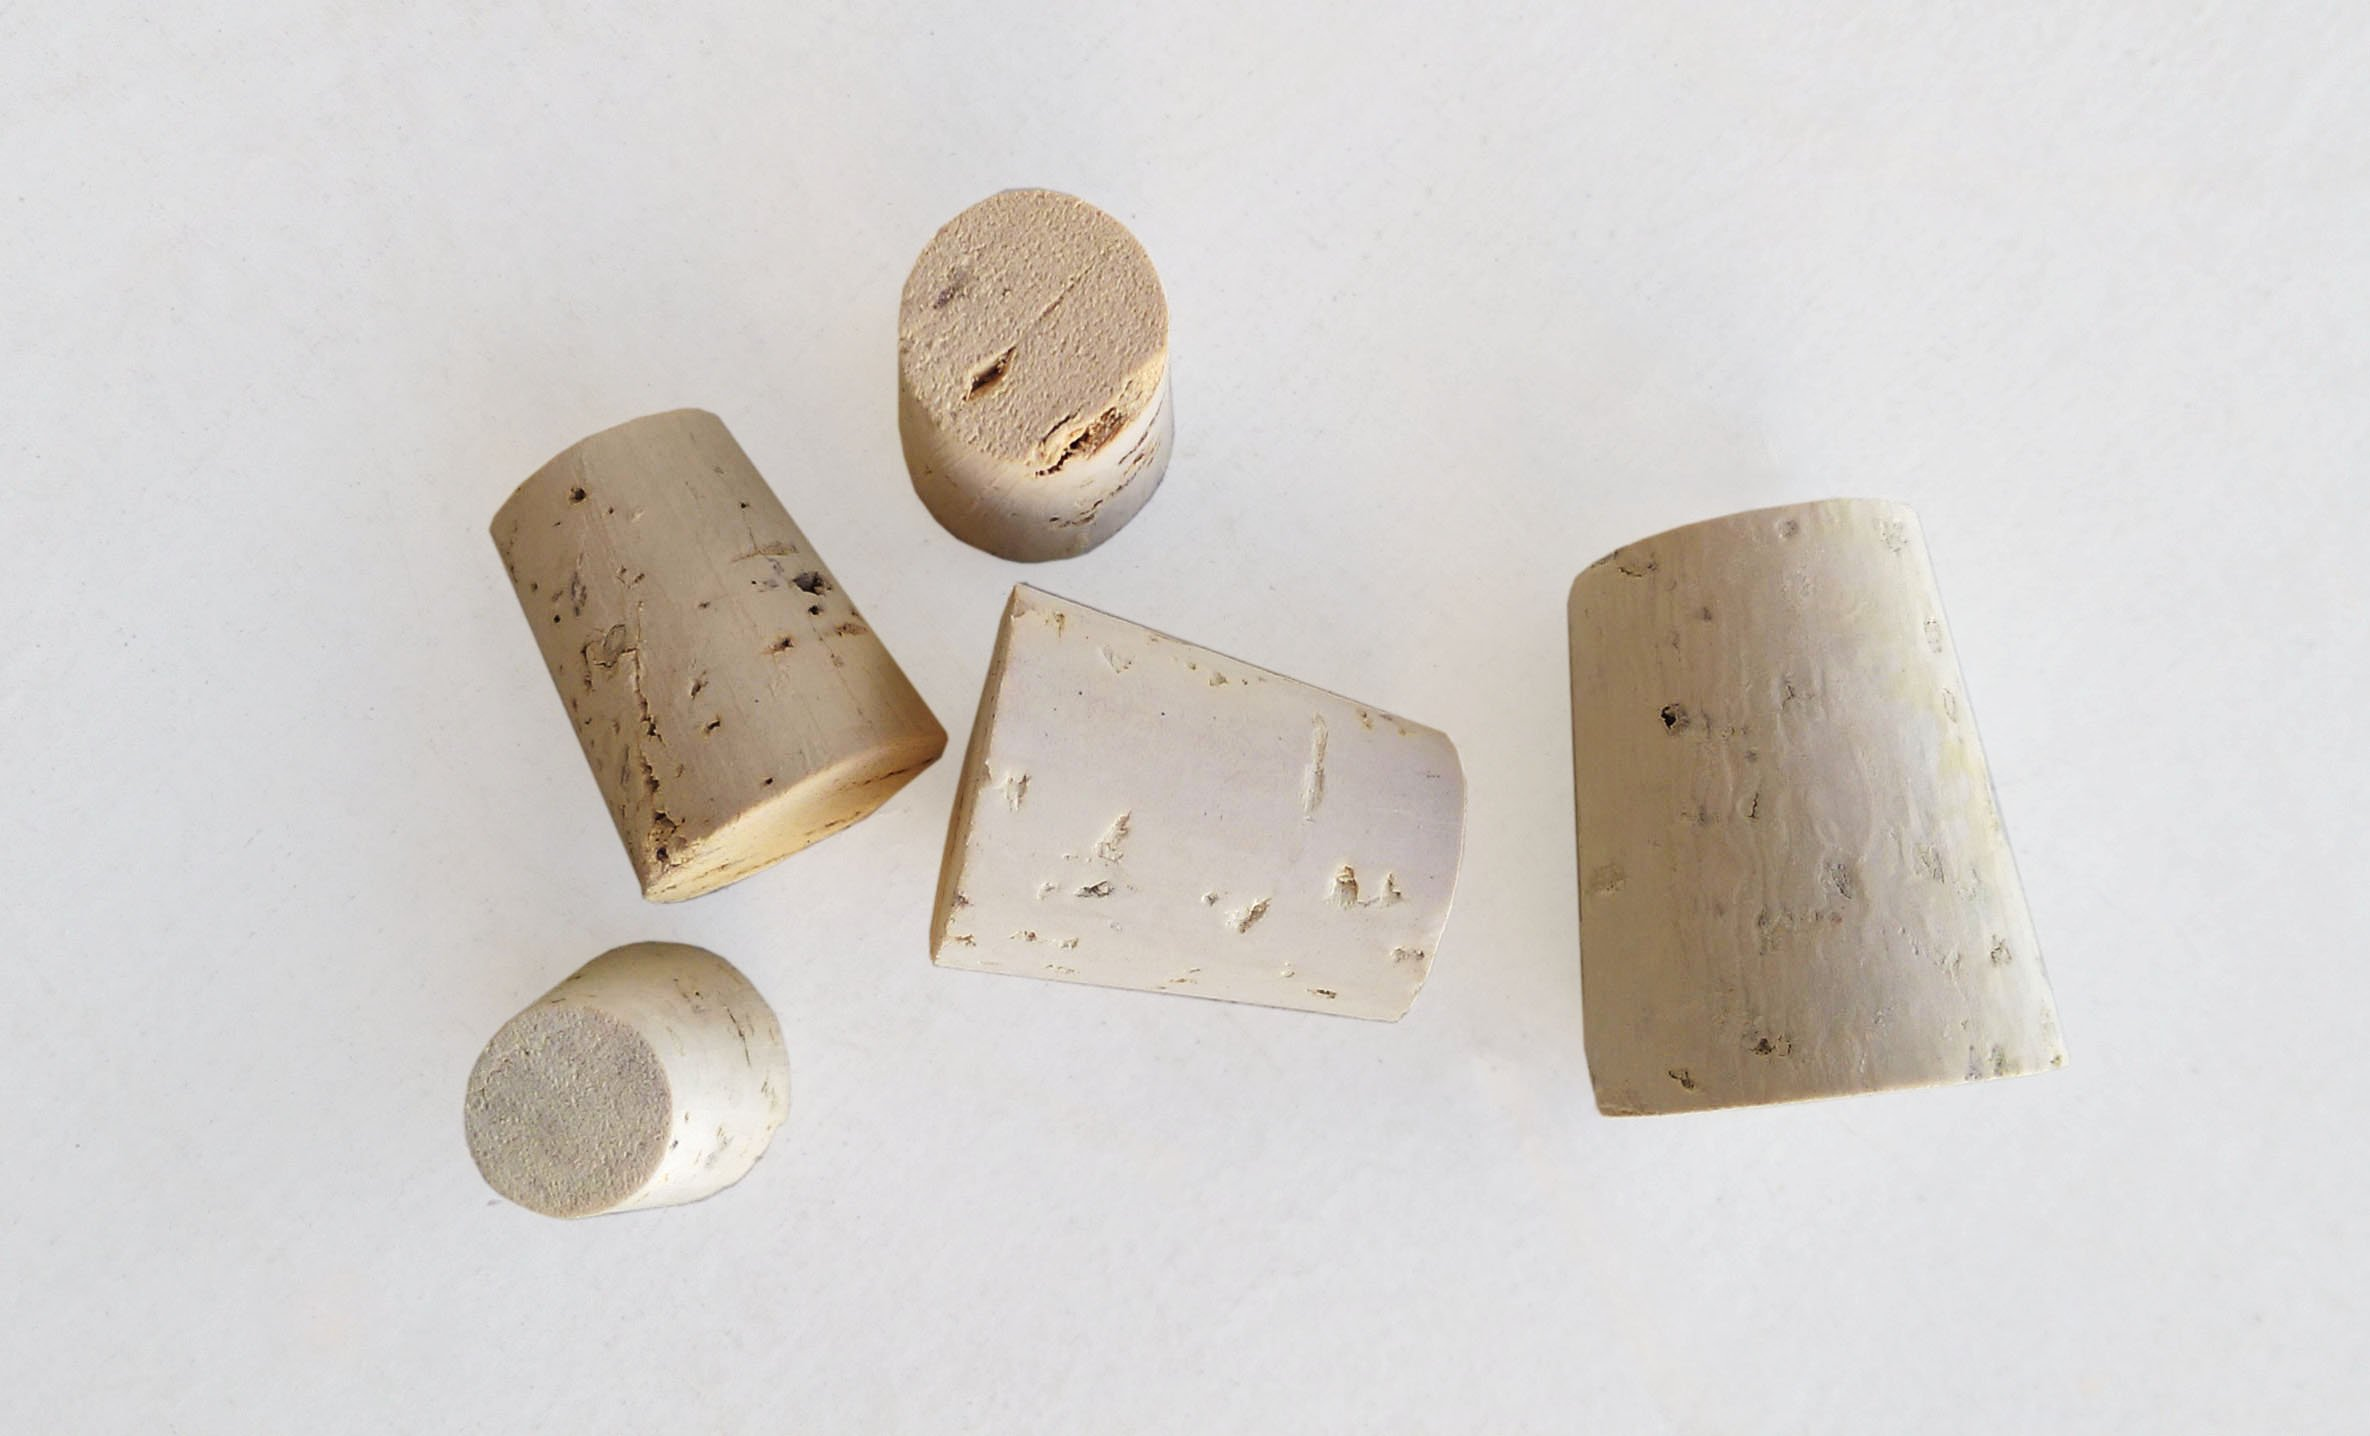 Small bag of Mixed Regular Length (RL) Natural Tapered Corks Bag of 45 (RL04, RL05, RL06, RL08, RL10) by Jelinek Cork Group